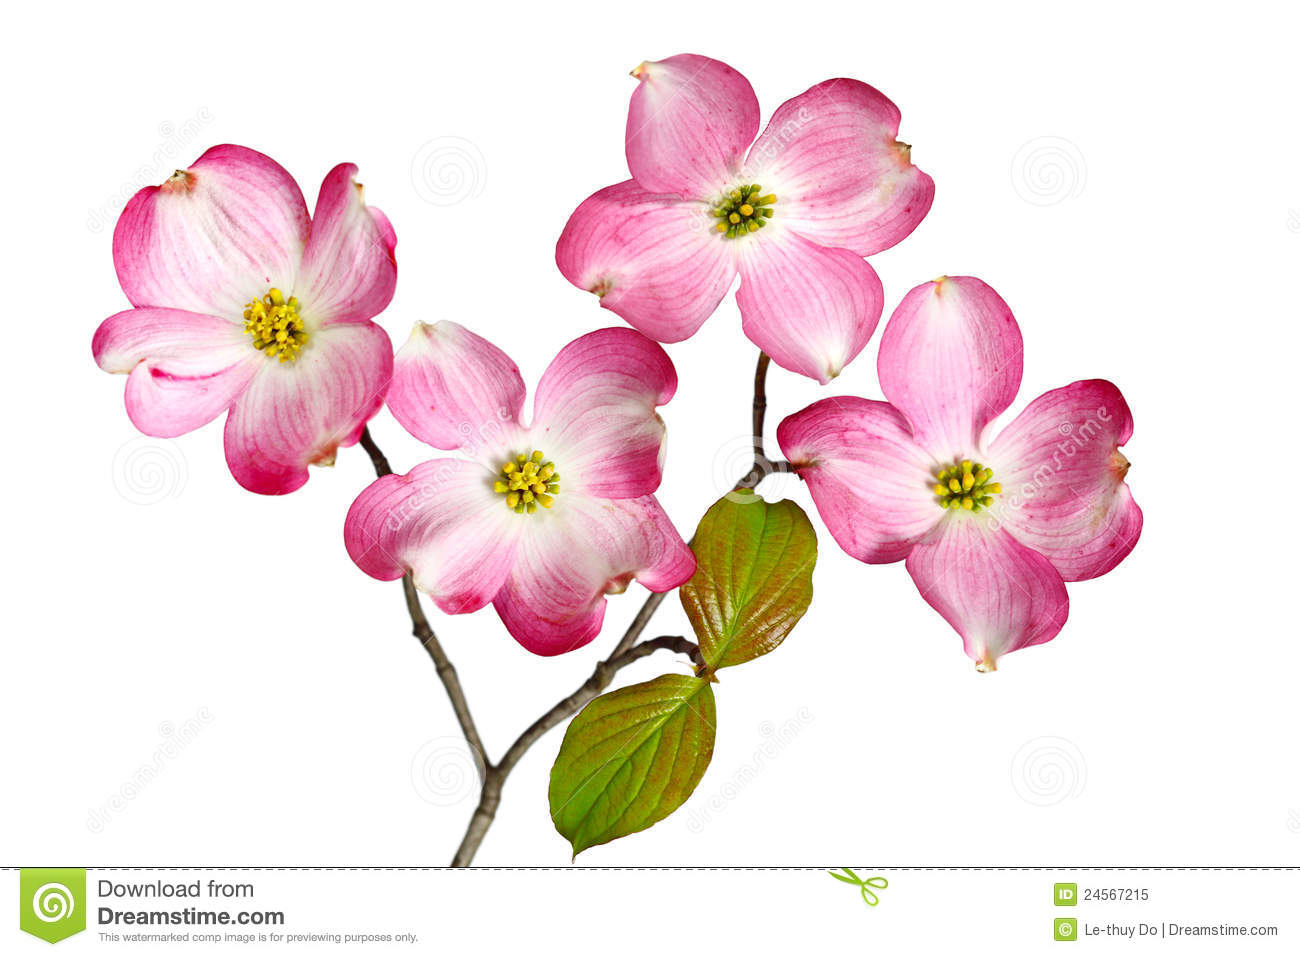 Blossom clipart dogwood tree White Photos Flowers best 24508523